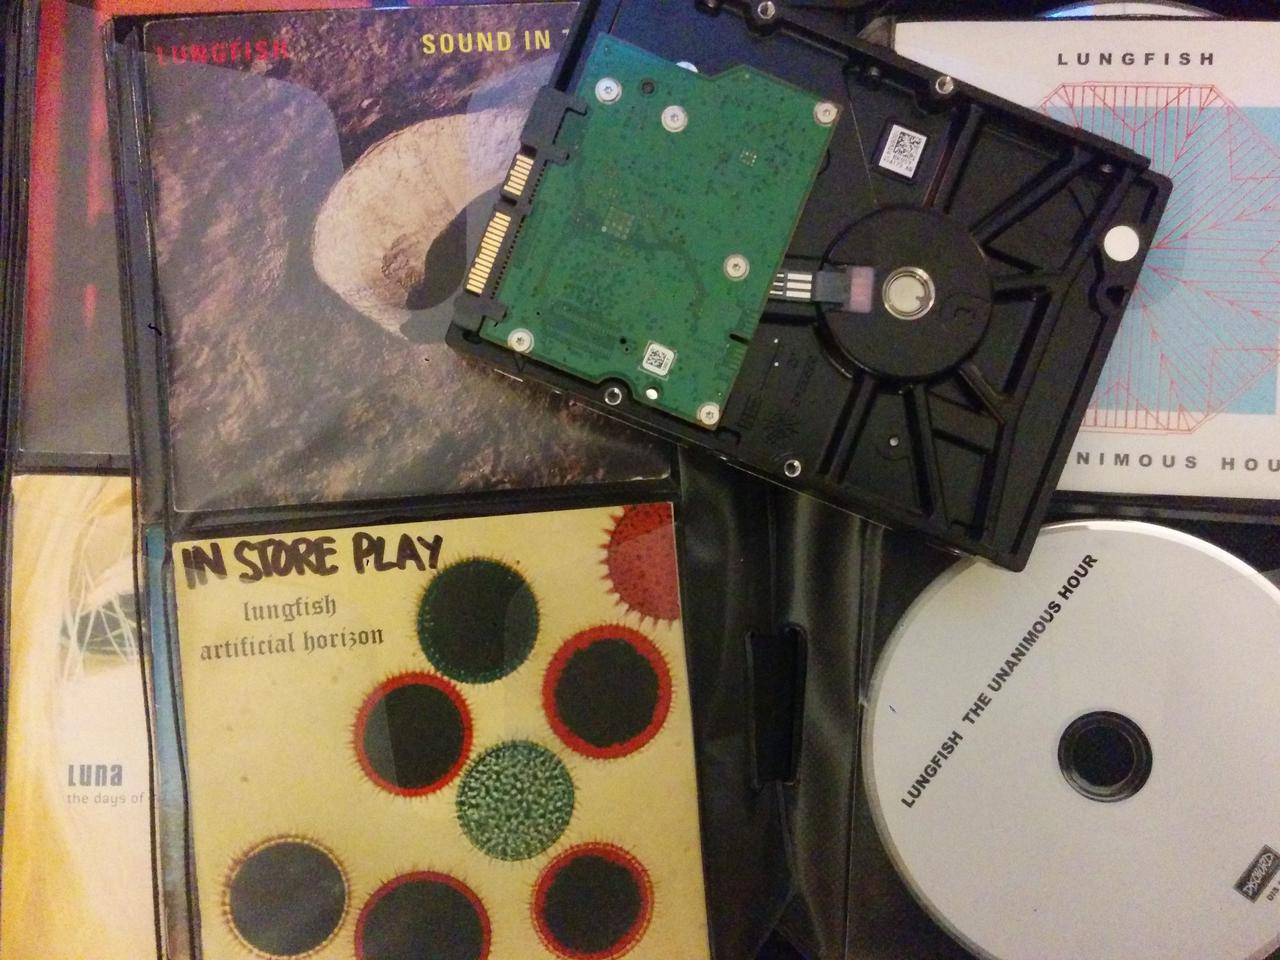 The best of '90s CDs and '90s technology. Also my favorite Lungfish CD